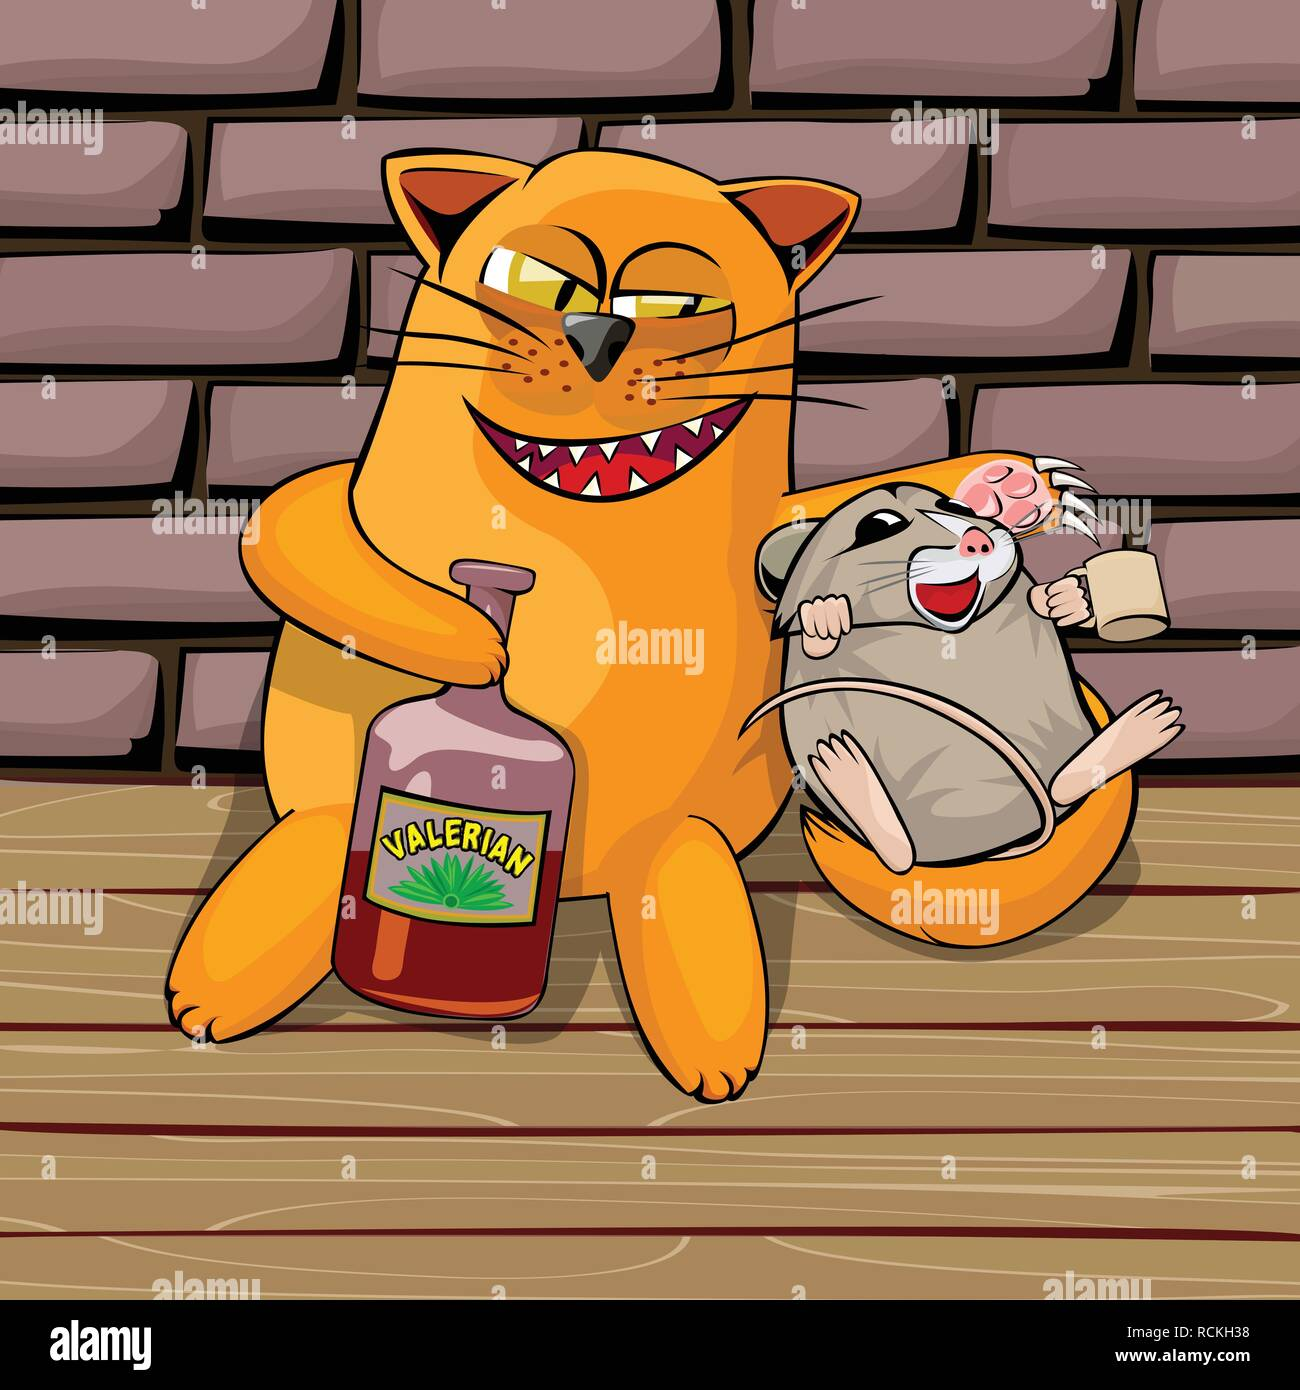 Red cat and mouse in the basement drinking valerian. Mouse drunk. cat look tricky, he shows his teeth and claws. Cartoon illustration with isolated ob - Stock Vector